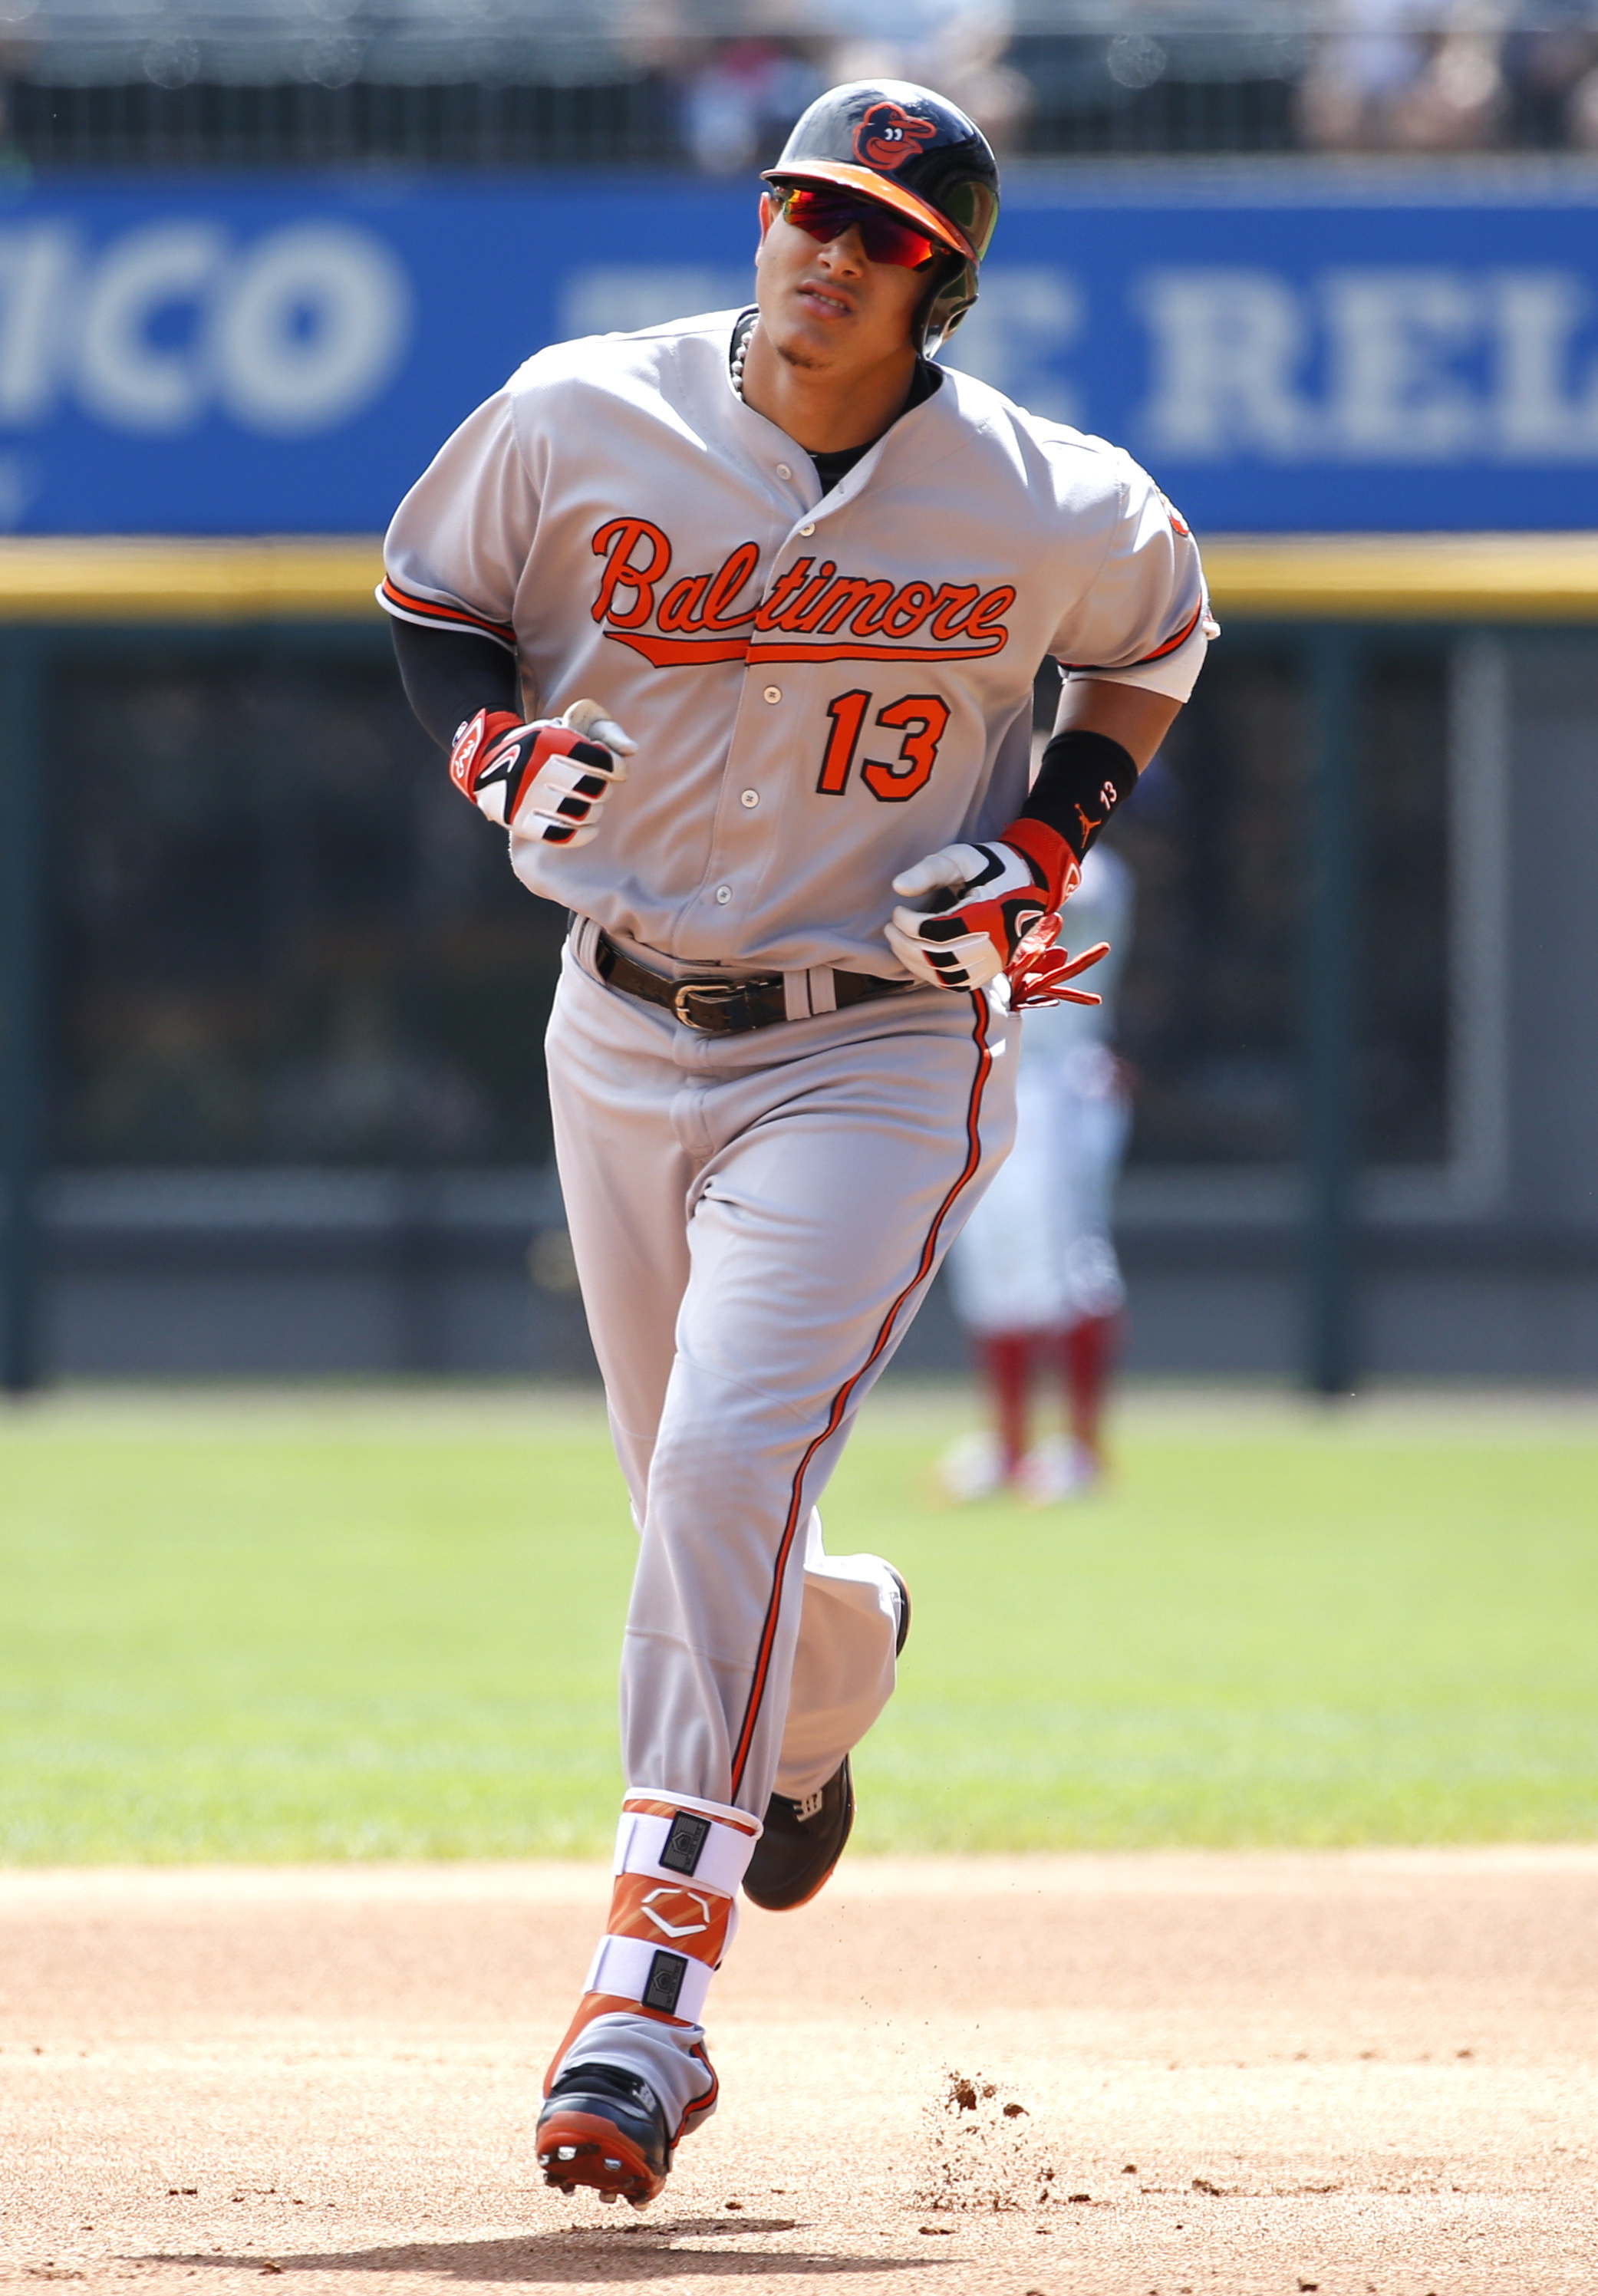 Baltimore Orioles' Manny Machado rounds the bases after hitting a two-run home run against the Chicago White Sox during the first inning of a baseball game in Chicago, Sunday, Aug. 7, 2016. (AP Photo/Nam Y. Huh)